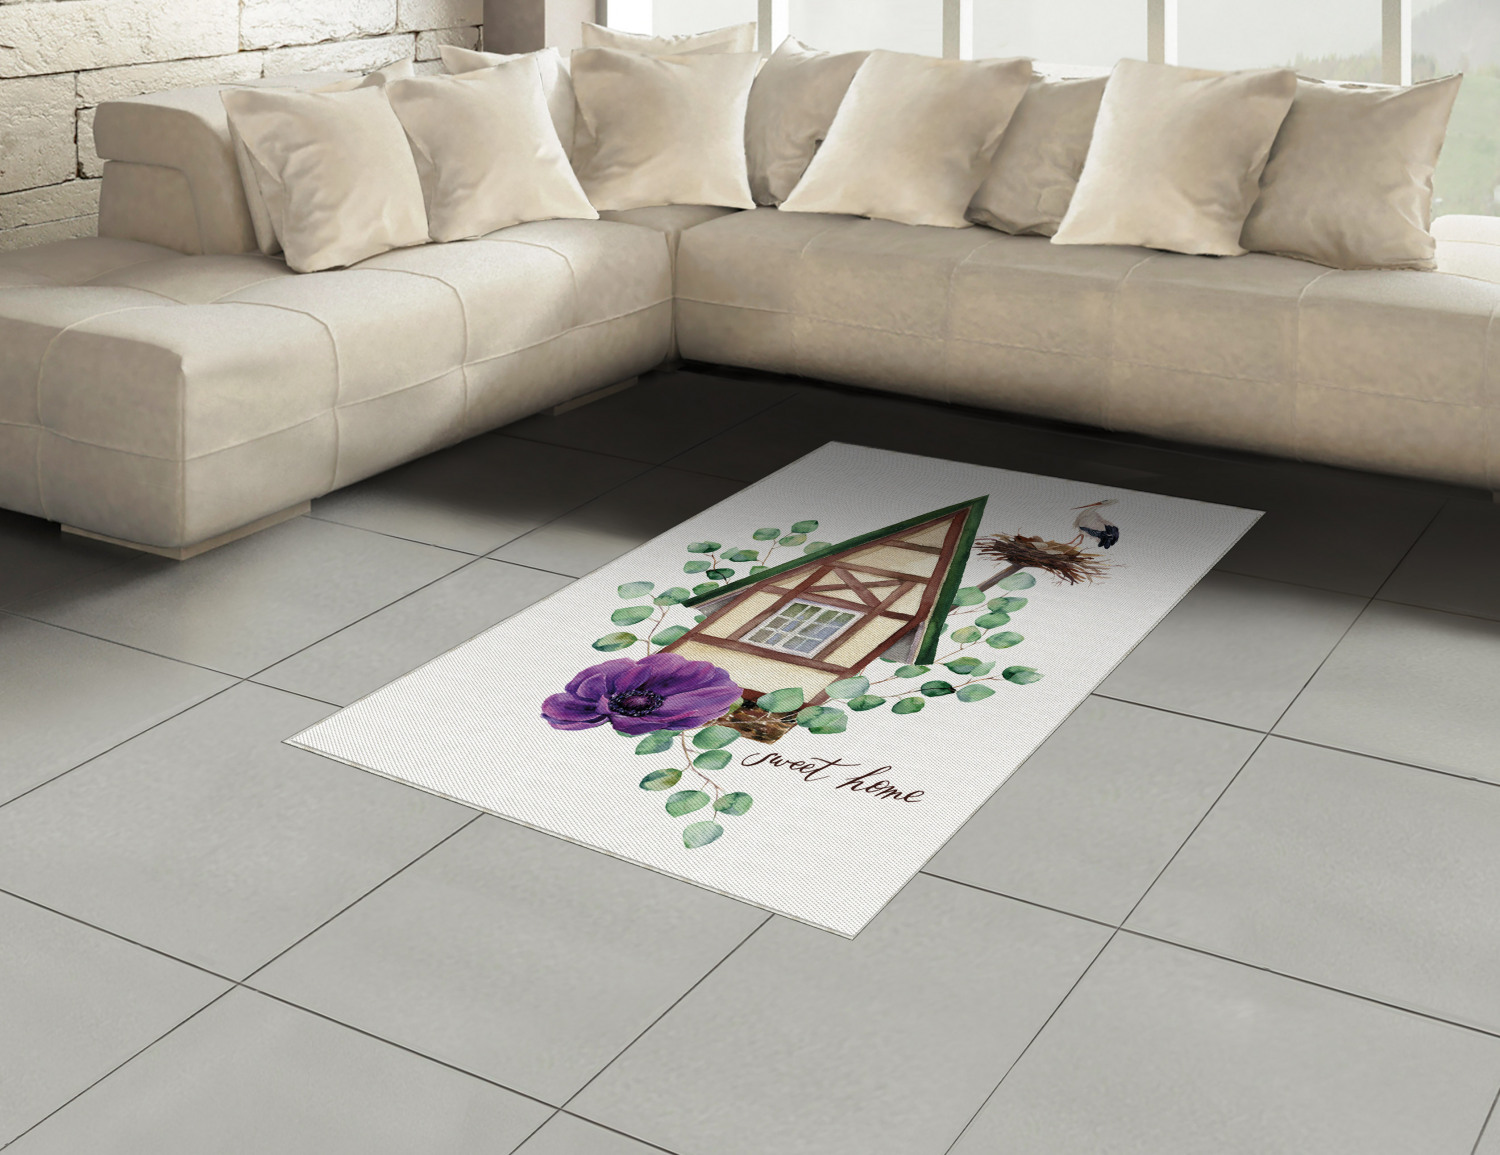 Anemone-Flower-Area-Rug-Decor-Flat-Woven-Accent-Rug-Home-Decor-2-Sizes-Ambesonne thumbnail 56